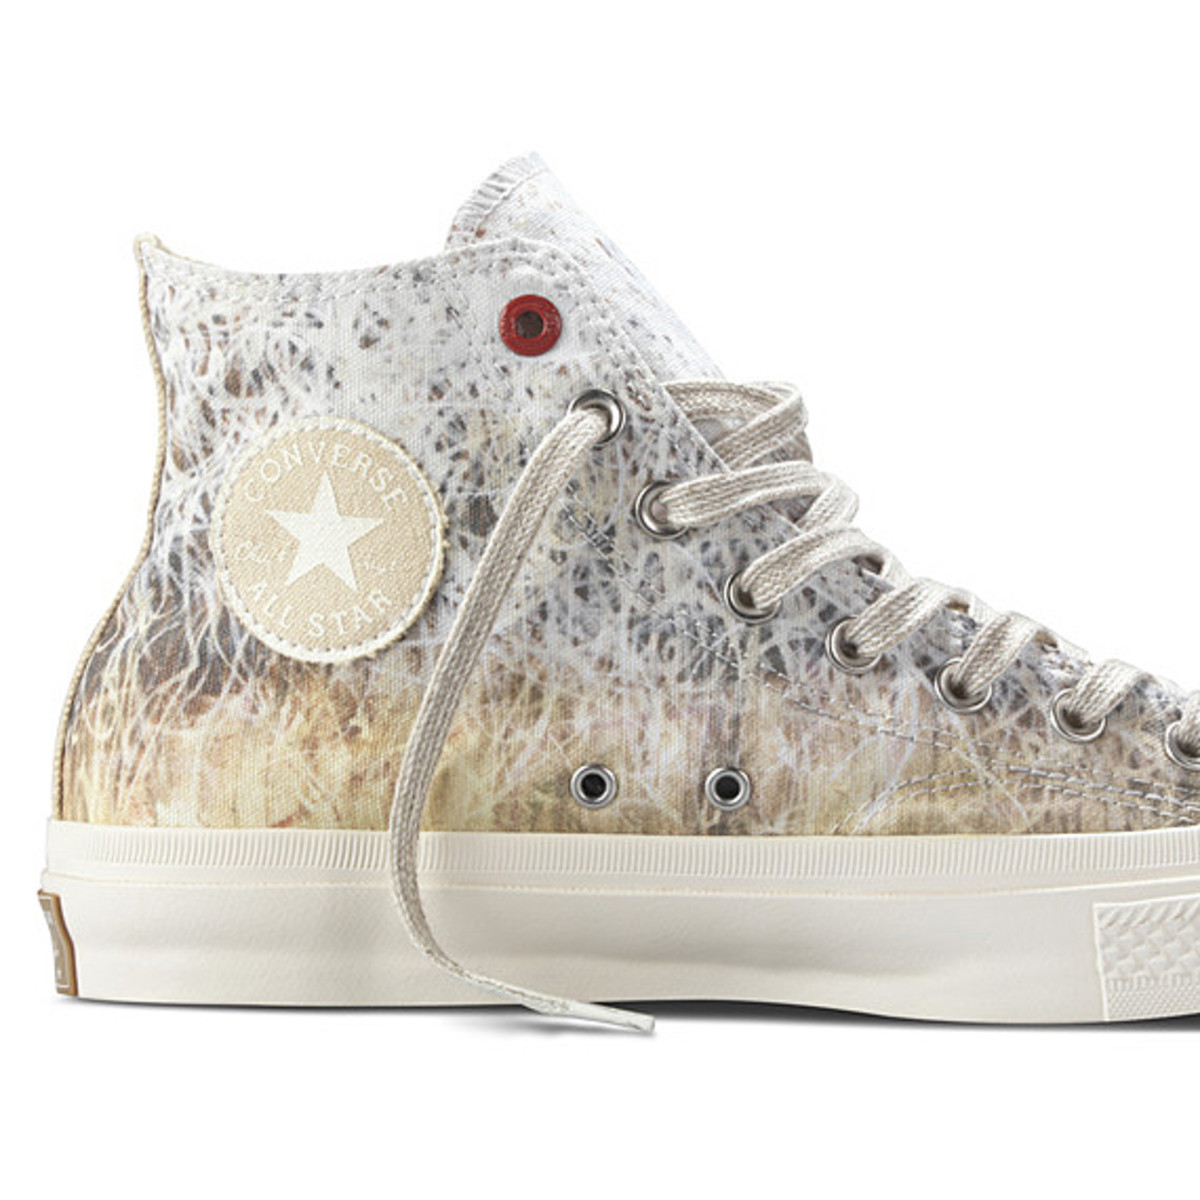 jose-parla-converse-product-red-chuck-taylor-all-star-03